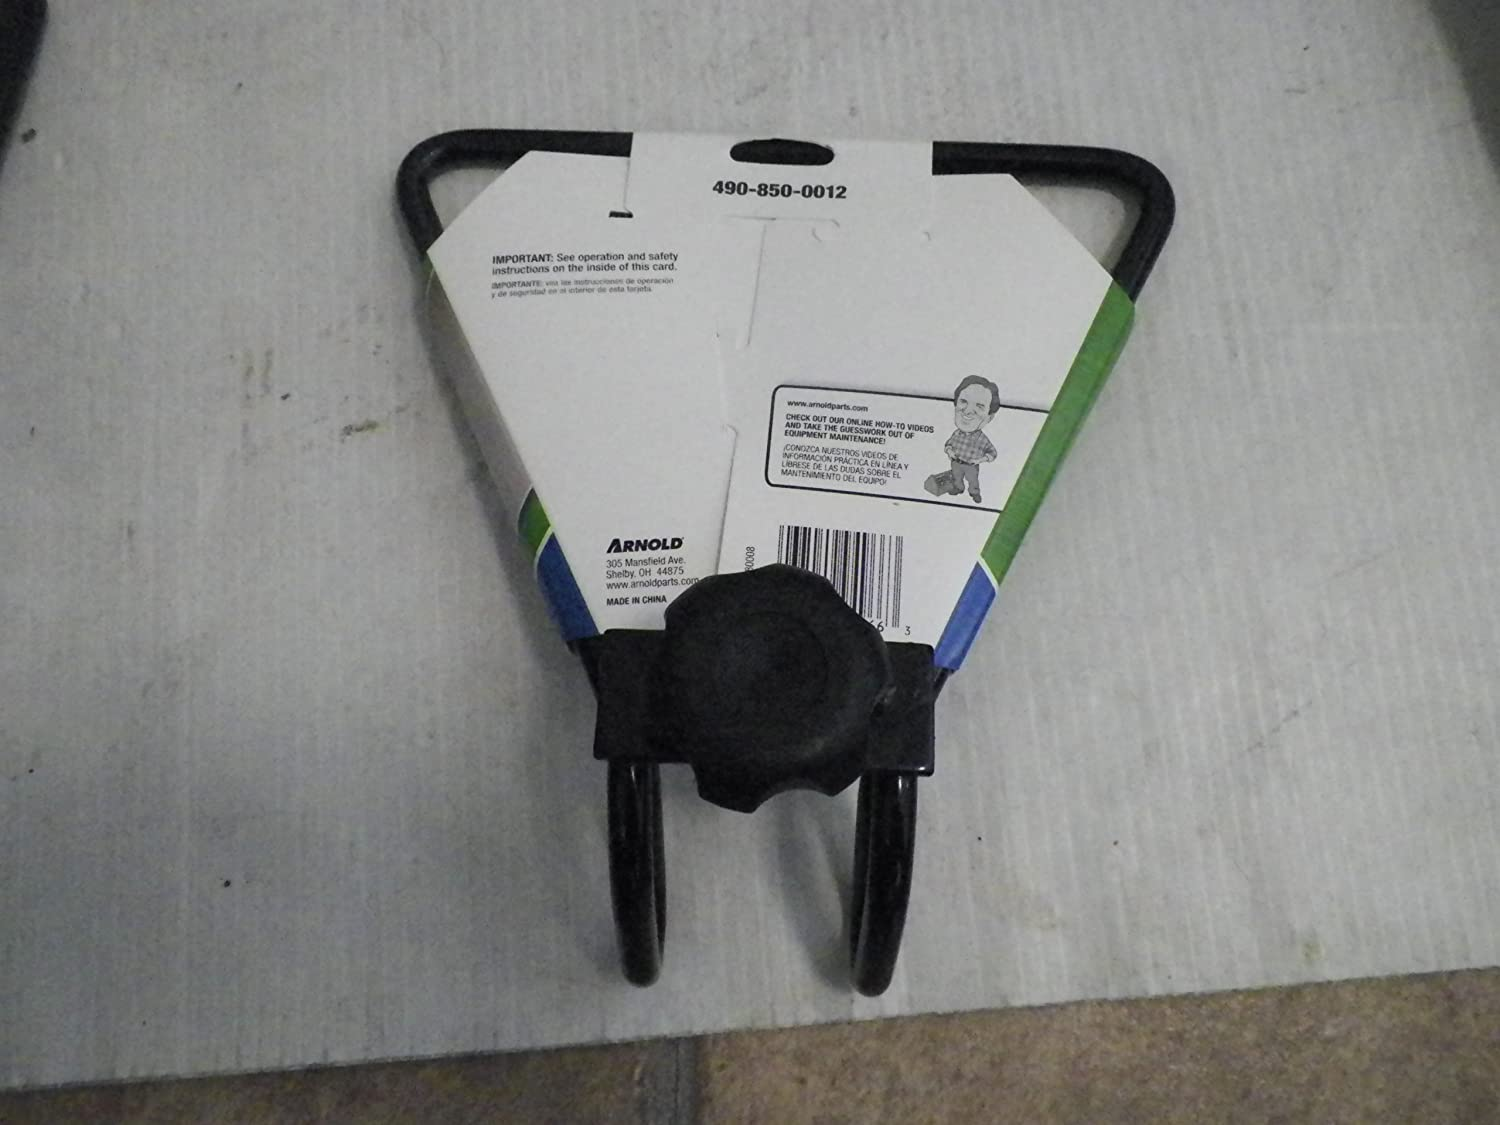 Amazon.com : Arnold Walk Behind Mower Stand Item#377746 Model#490-850-0012 UPC#037049949663 : Garden & Outdoor